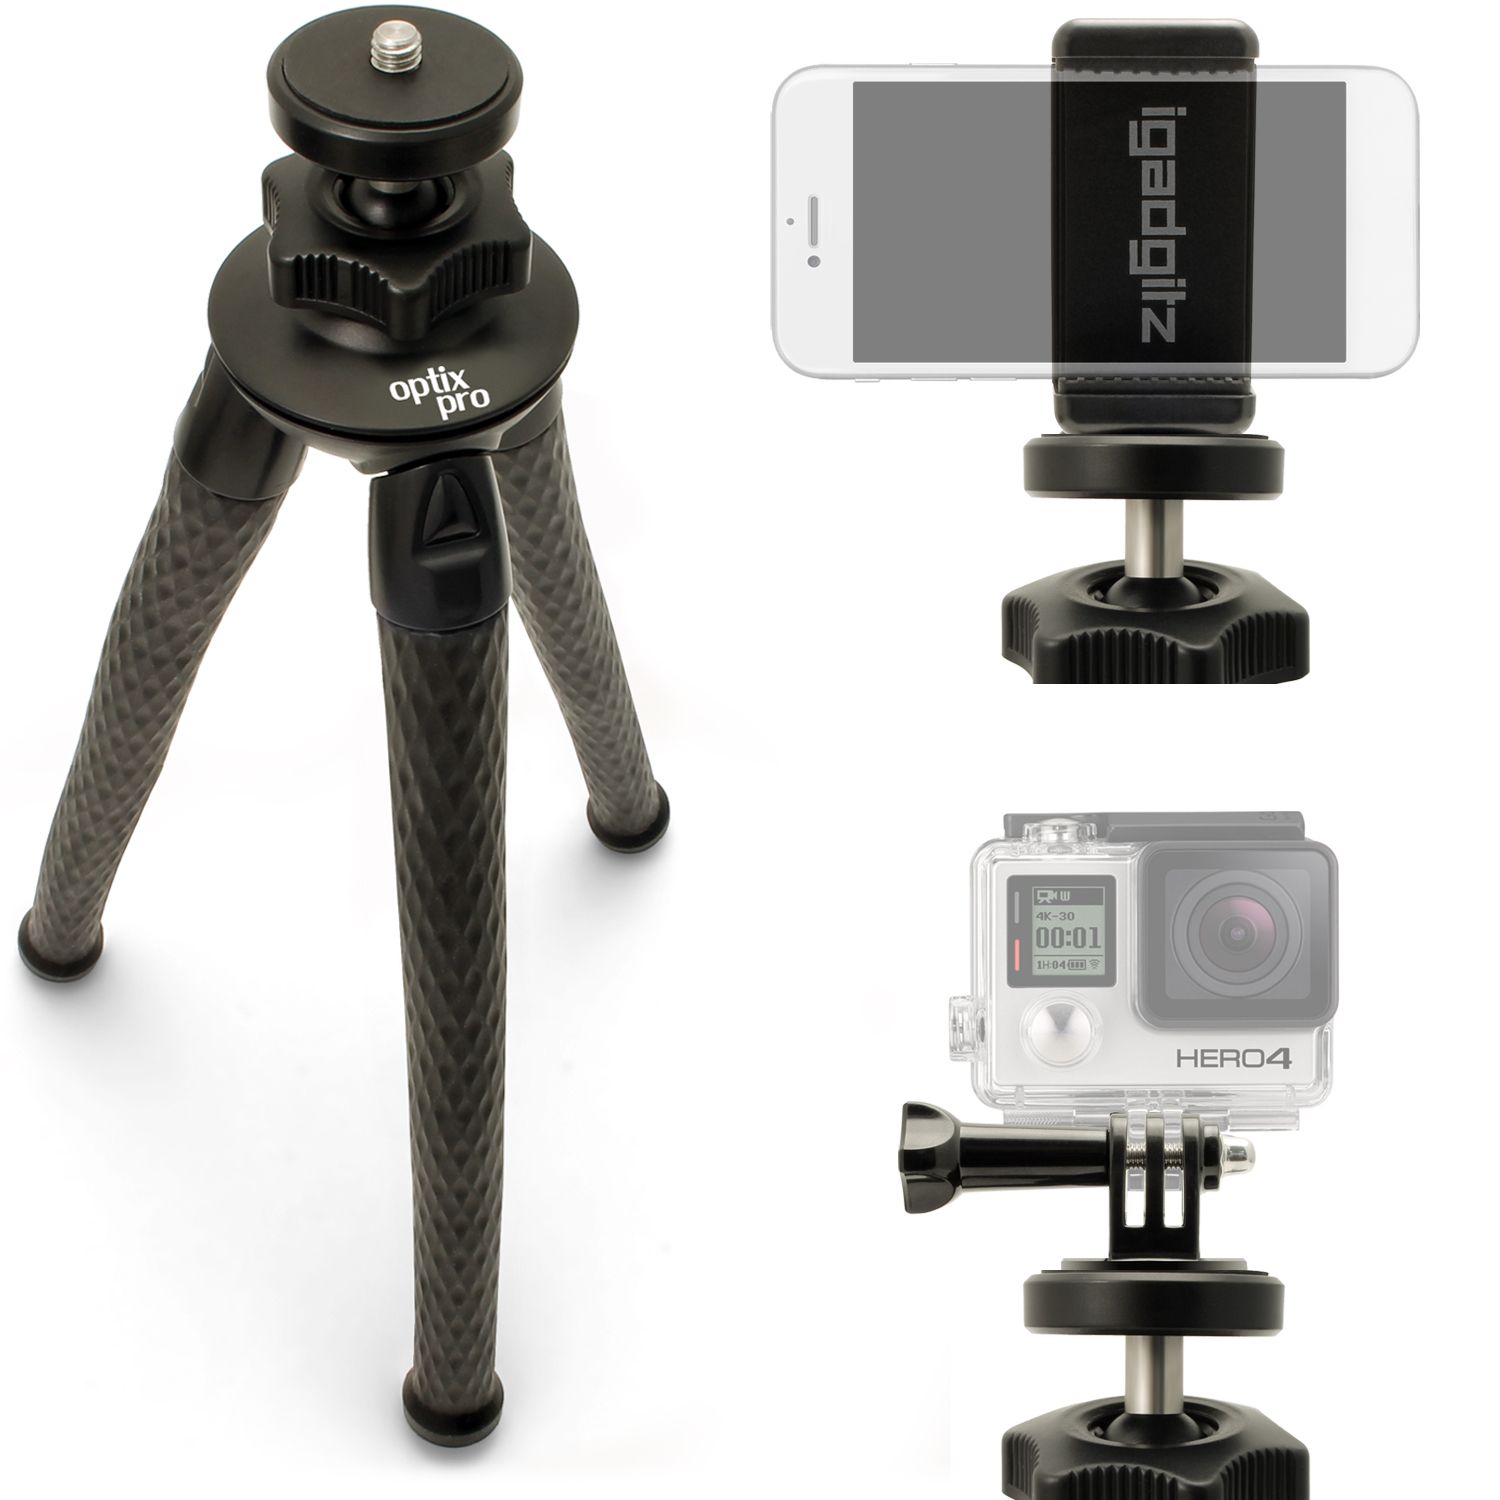 iGadgitz Large Ultra Flexible Tripod Stand, Smartphone Holder Bracket, Thumb Screw + Nut Adaptor for DSLR Action Cameras